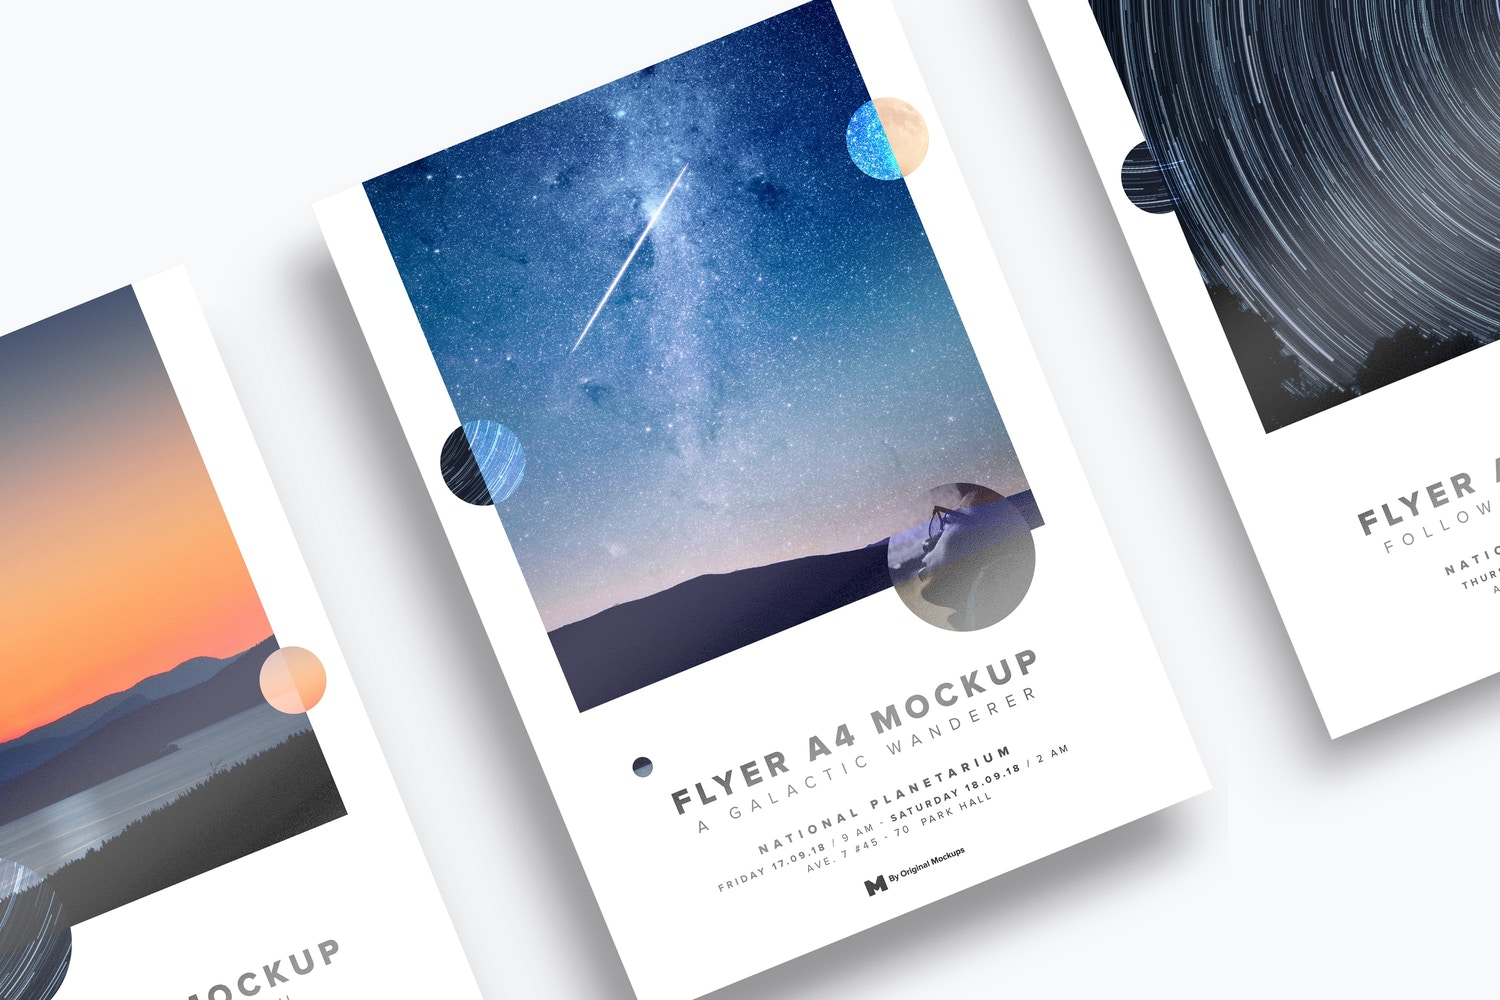 A4 / A5 Flyer Mockup 01 by Original Mockups on Original Mockups